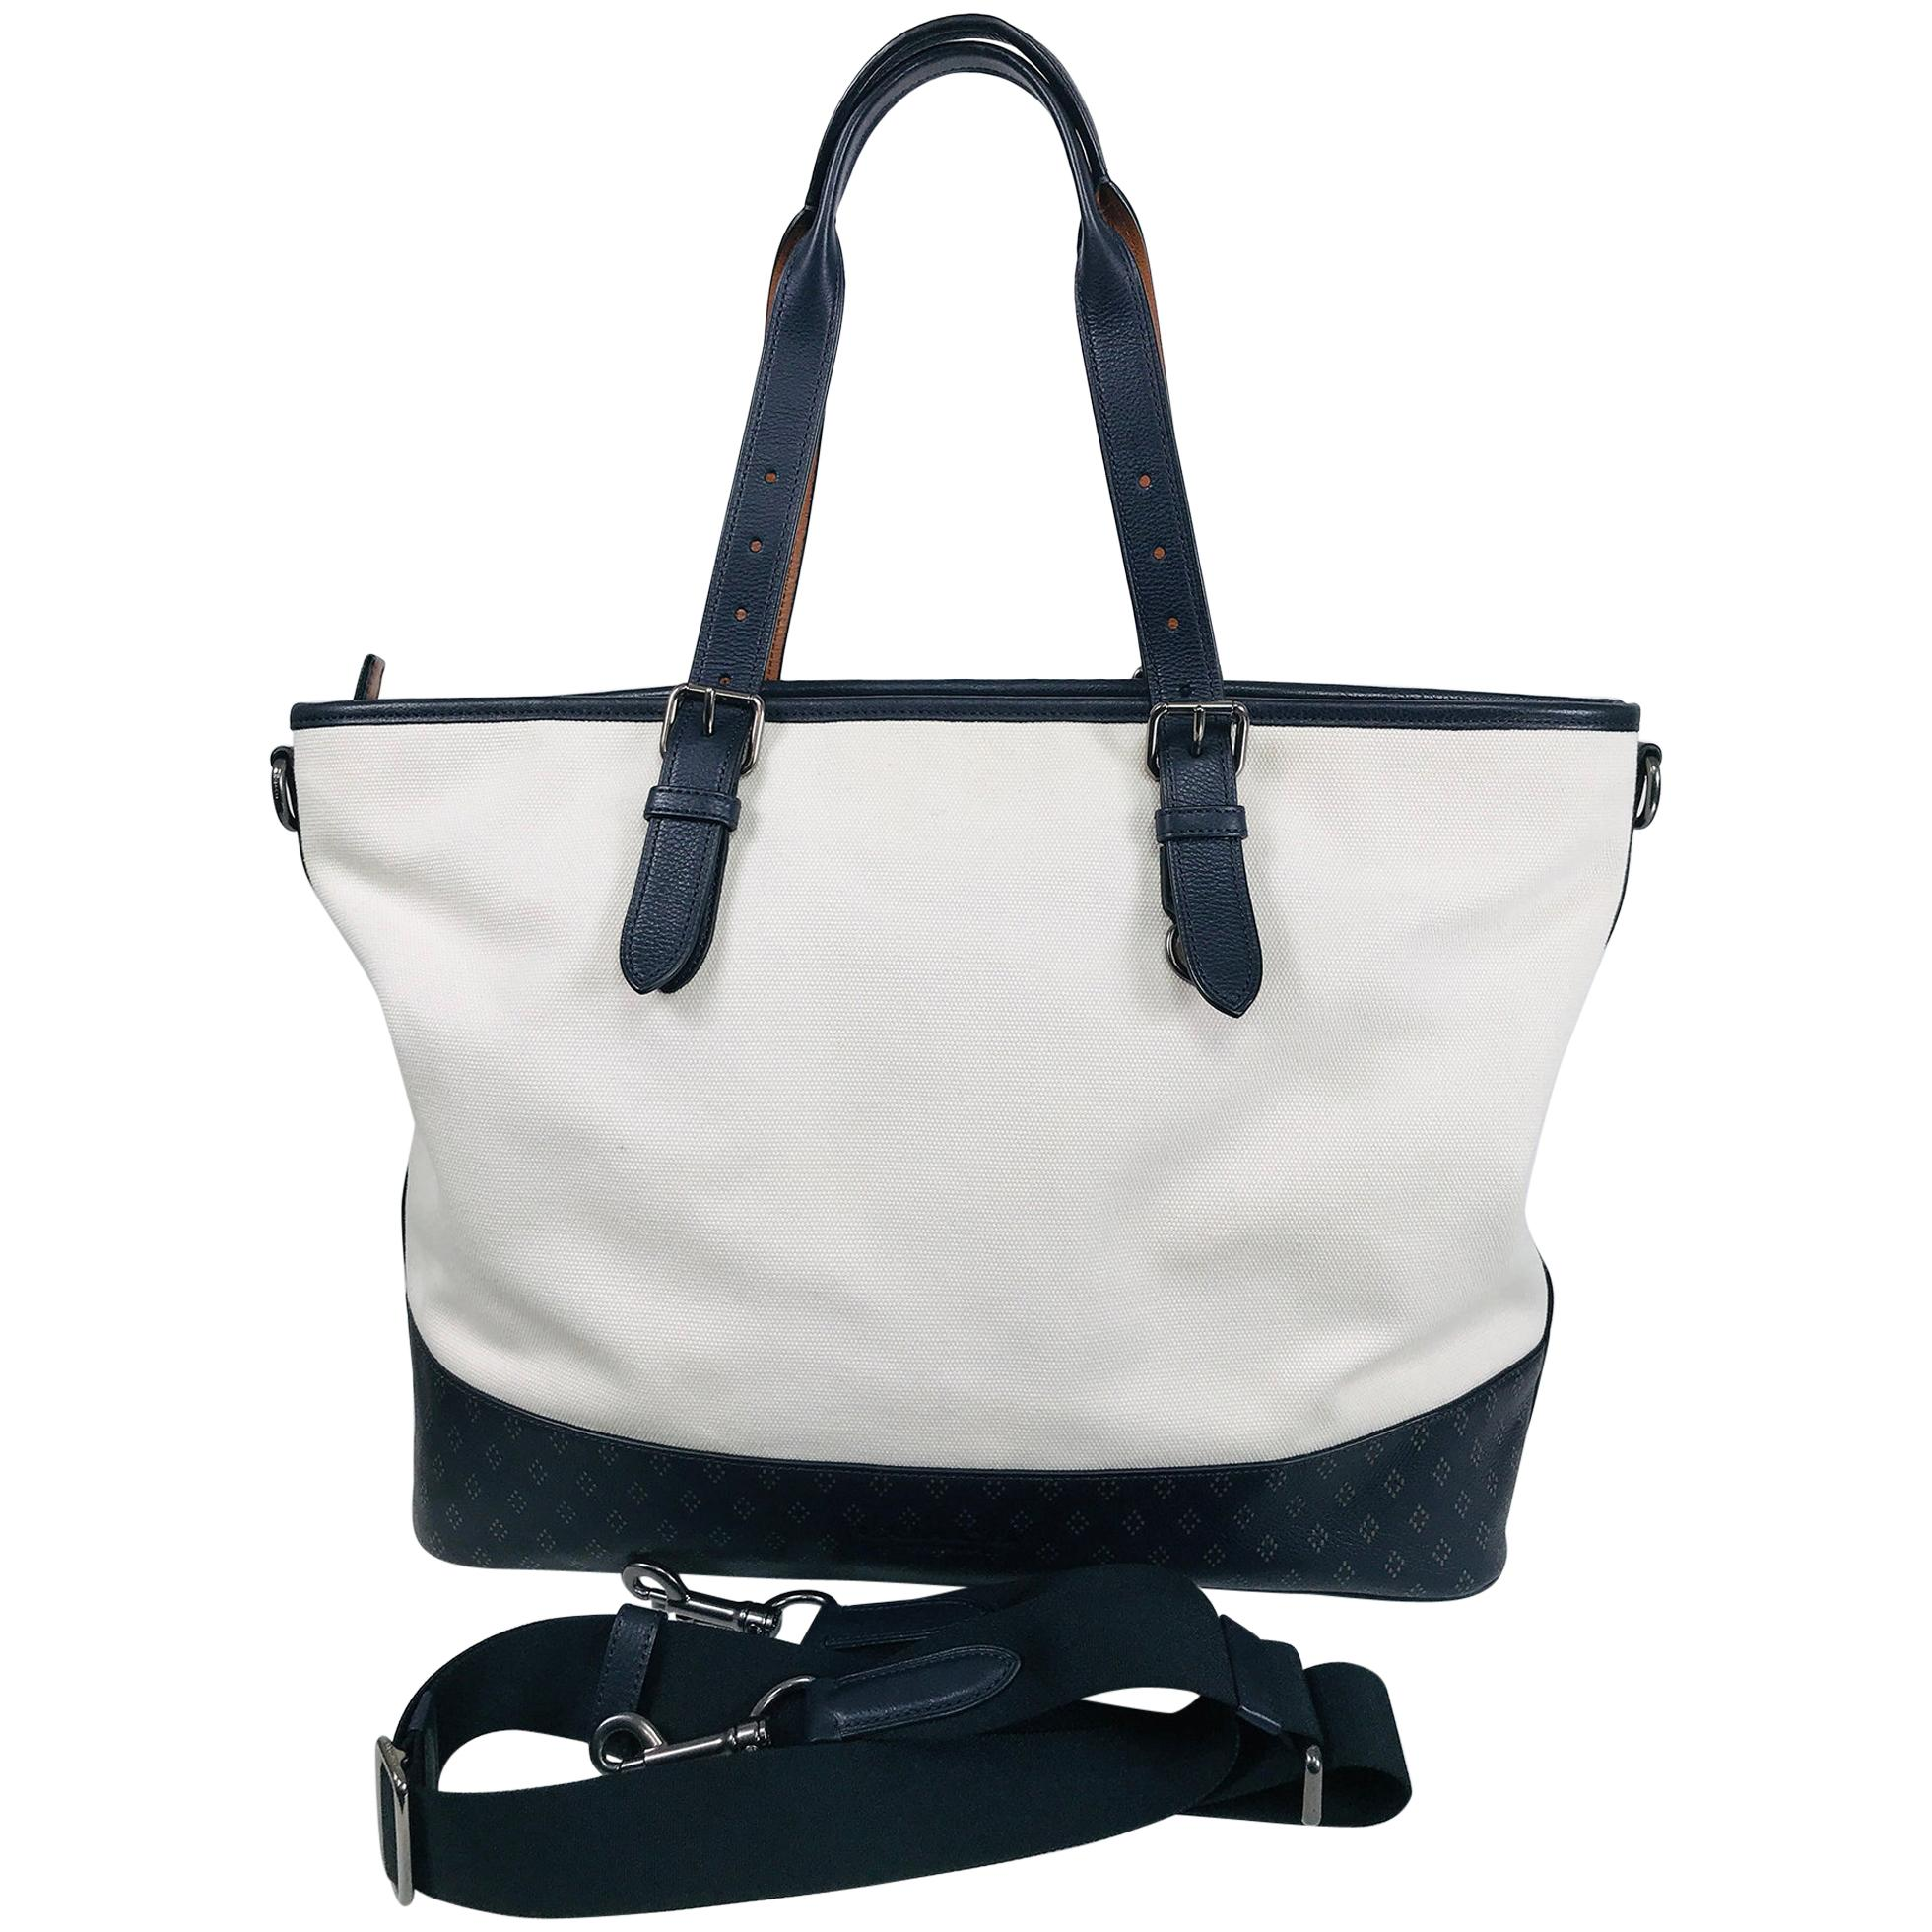 Coach White Canvas Black Leather Trim With Black & Tan Printed Tote Bag